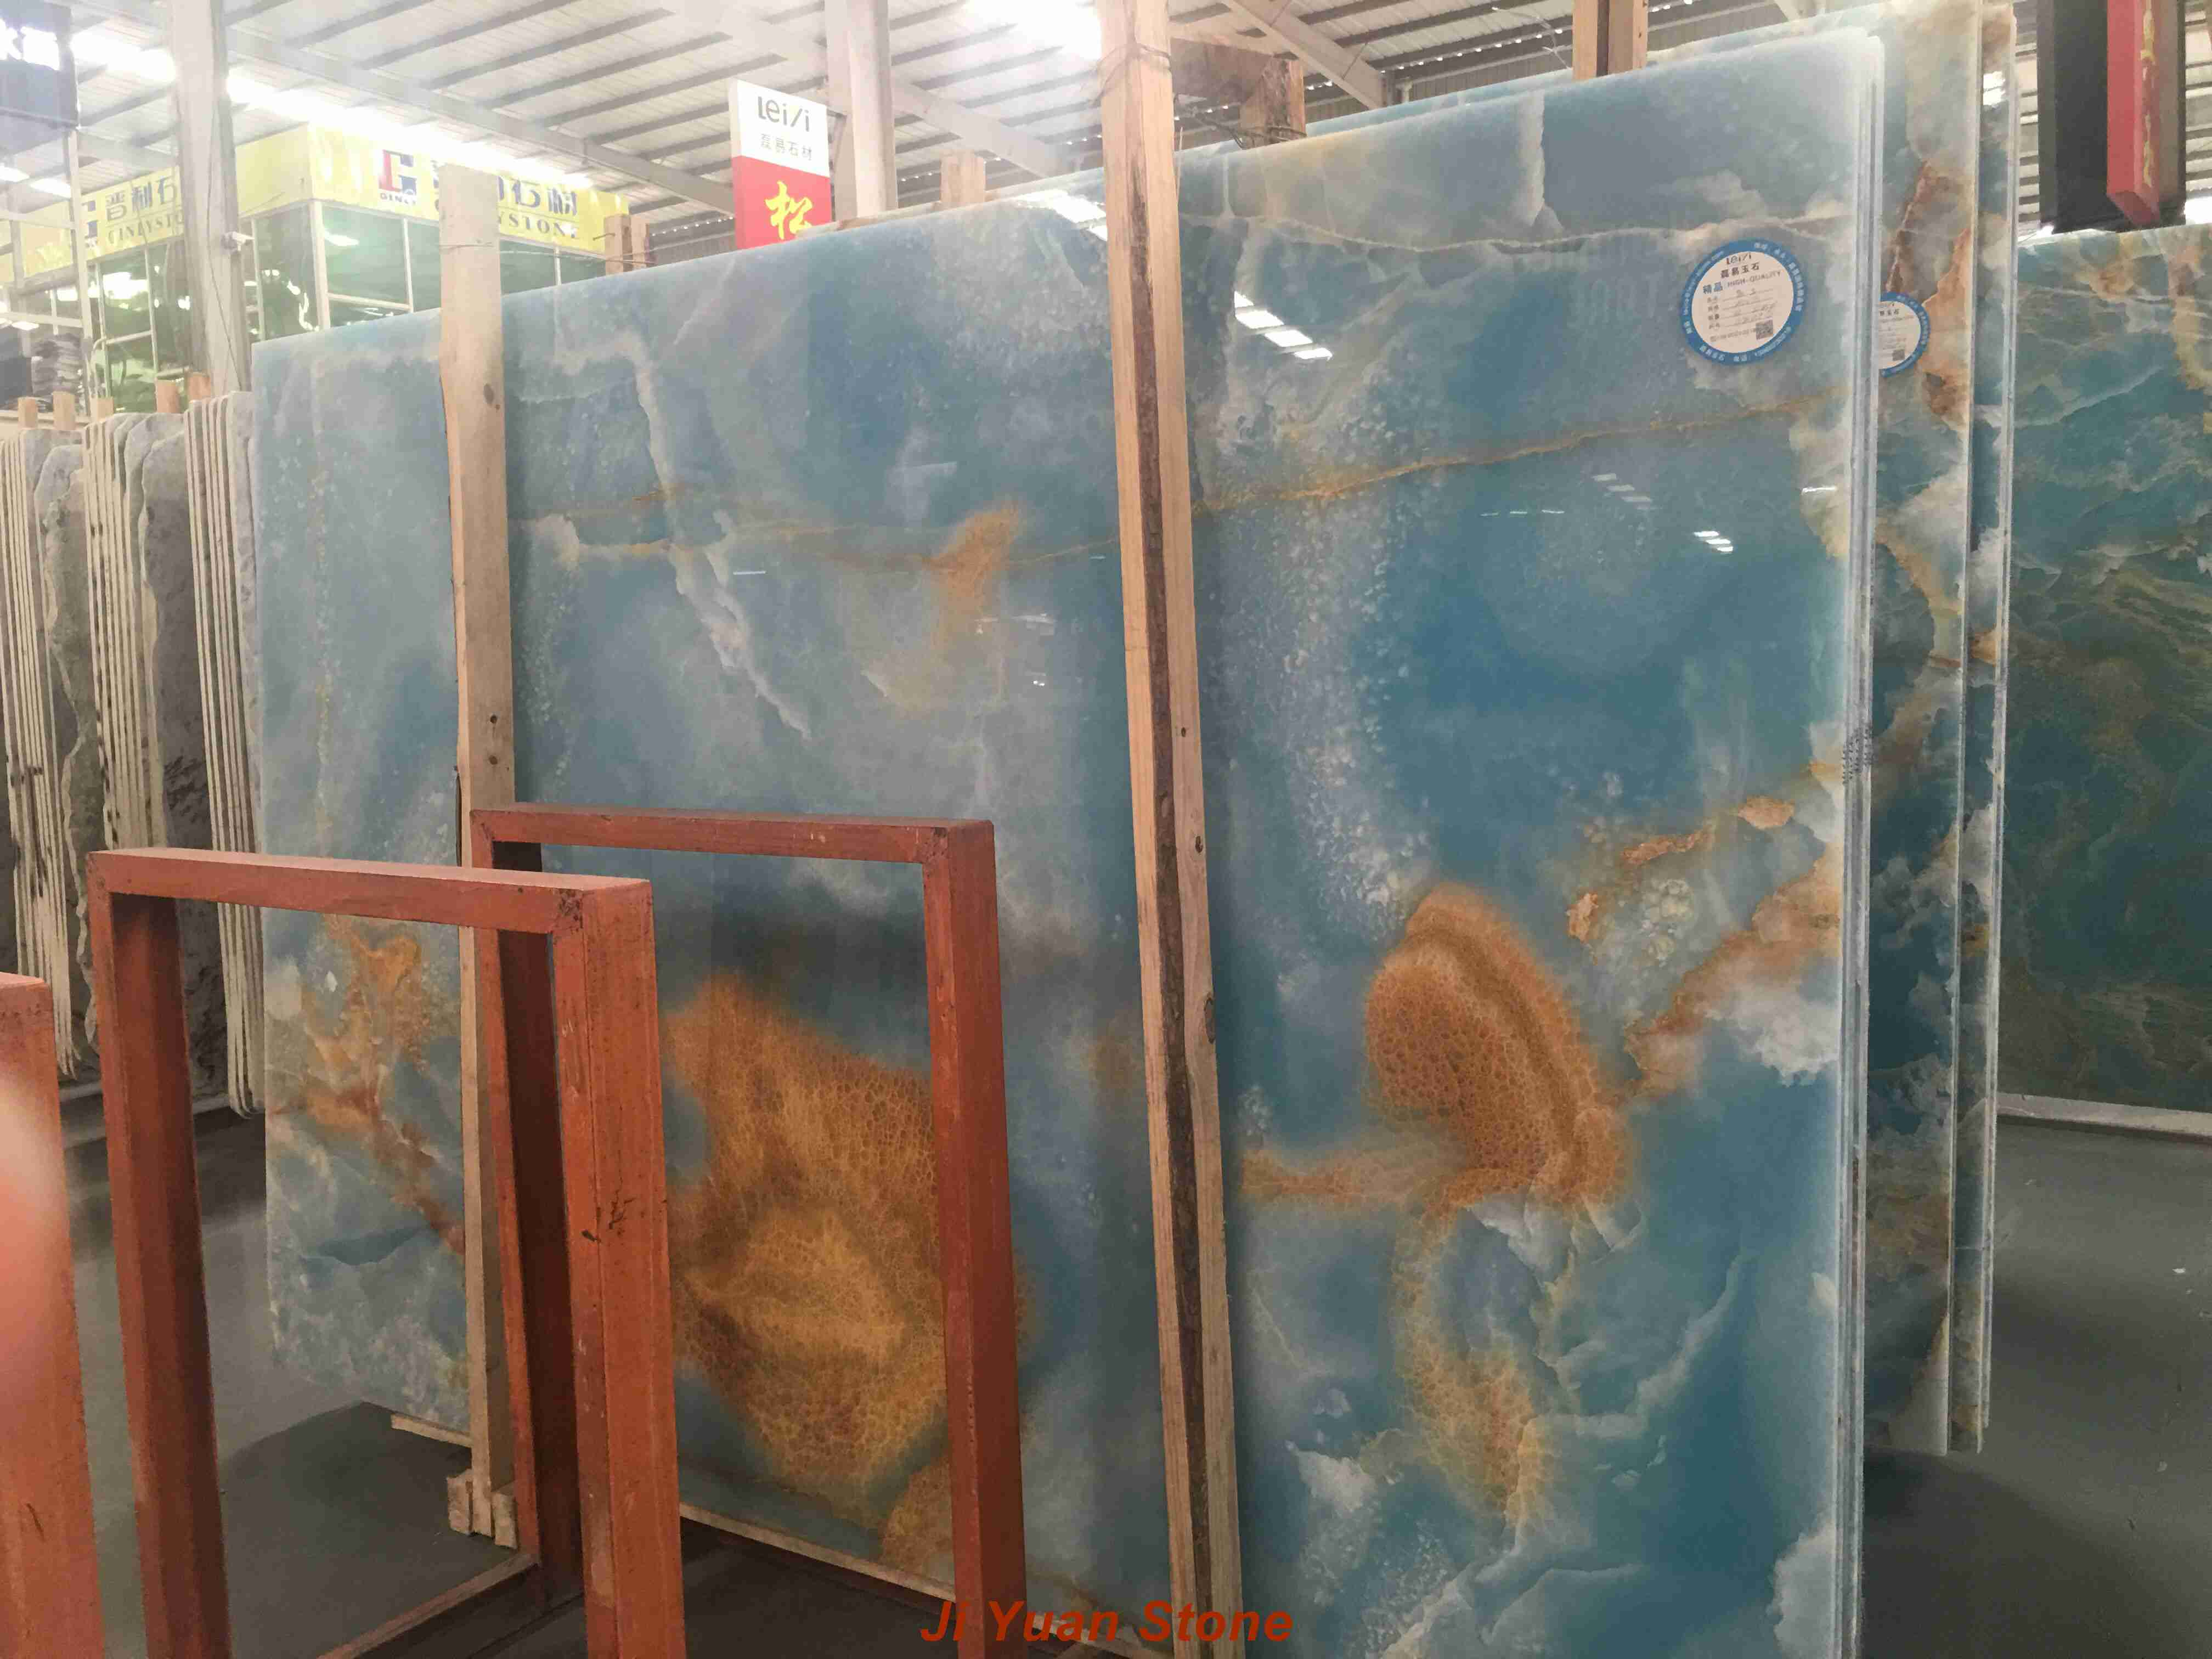 marble blue color,blue sea marble,swell blue marble,blue marble swell,blue marble case,deep blue marble,little blue marble,blue marble art,blue marble mosaic,blue marble ball